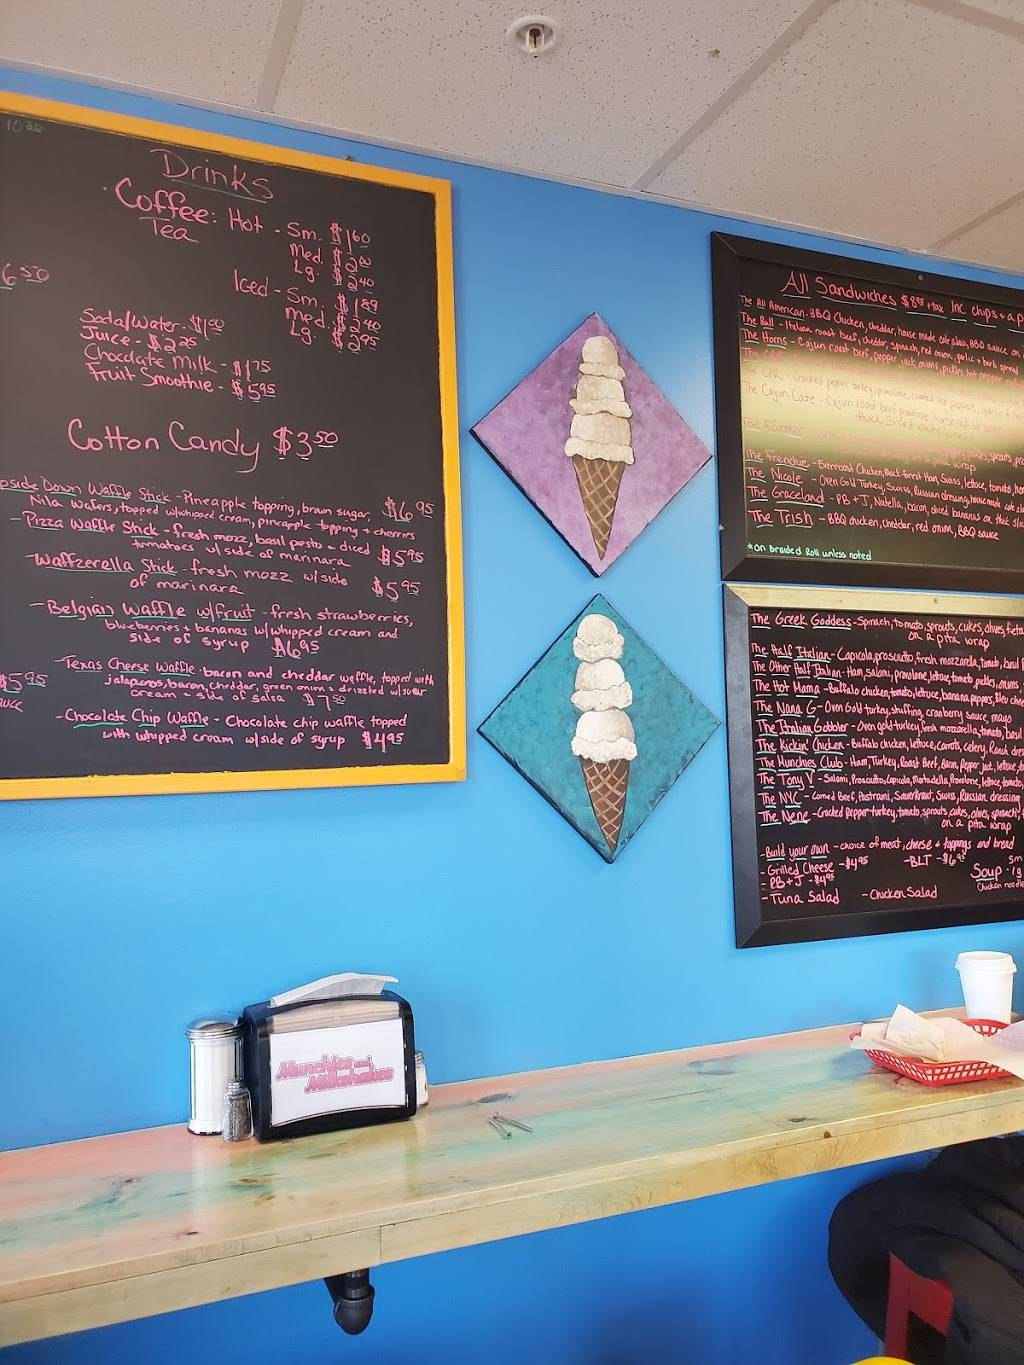 Munchies and Milkshakes | cafe | 169 Nantasket Ave, Hull, MA 02045, USA | 7812149092 OR +1 781-214-9092